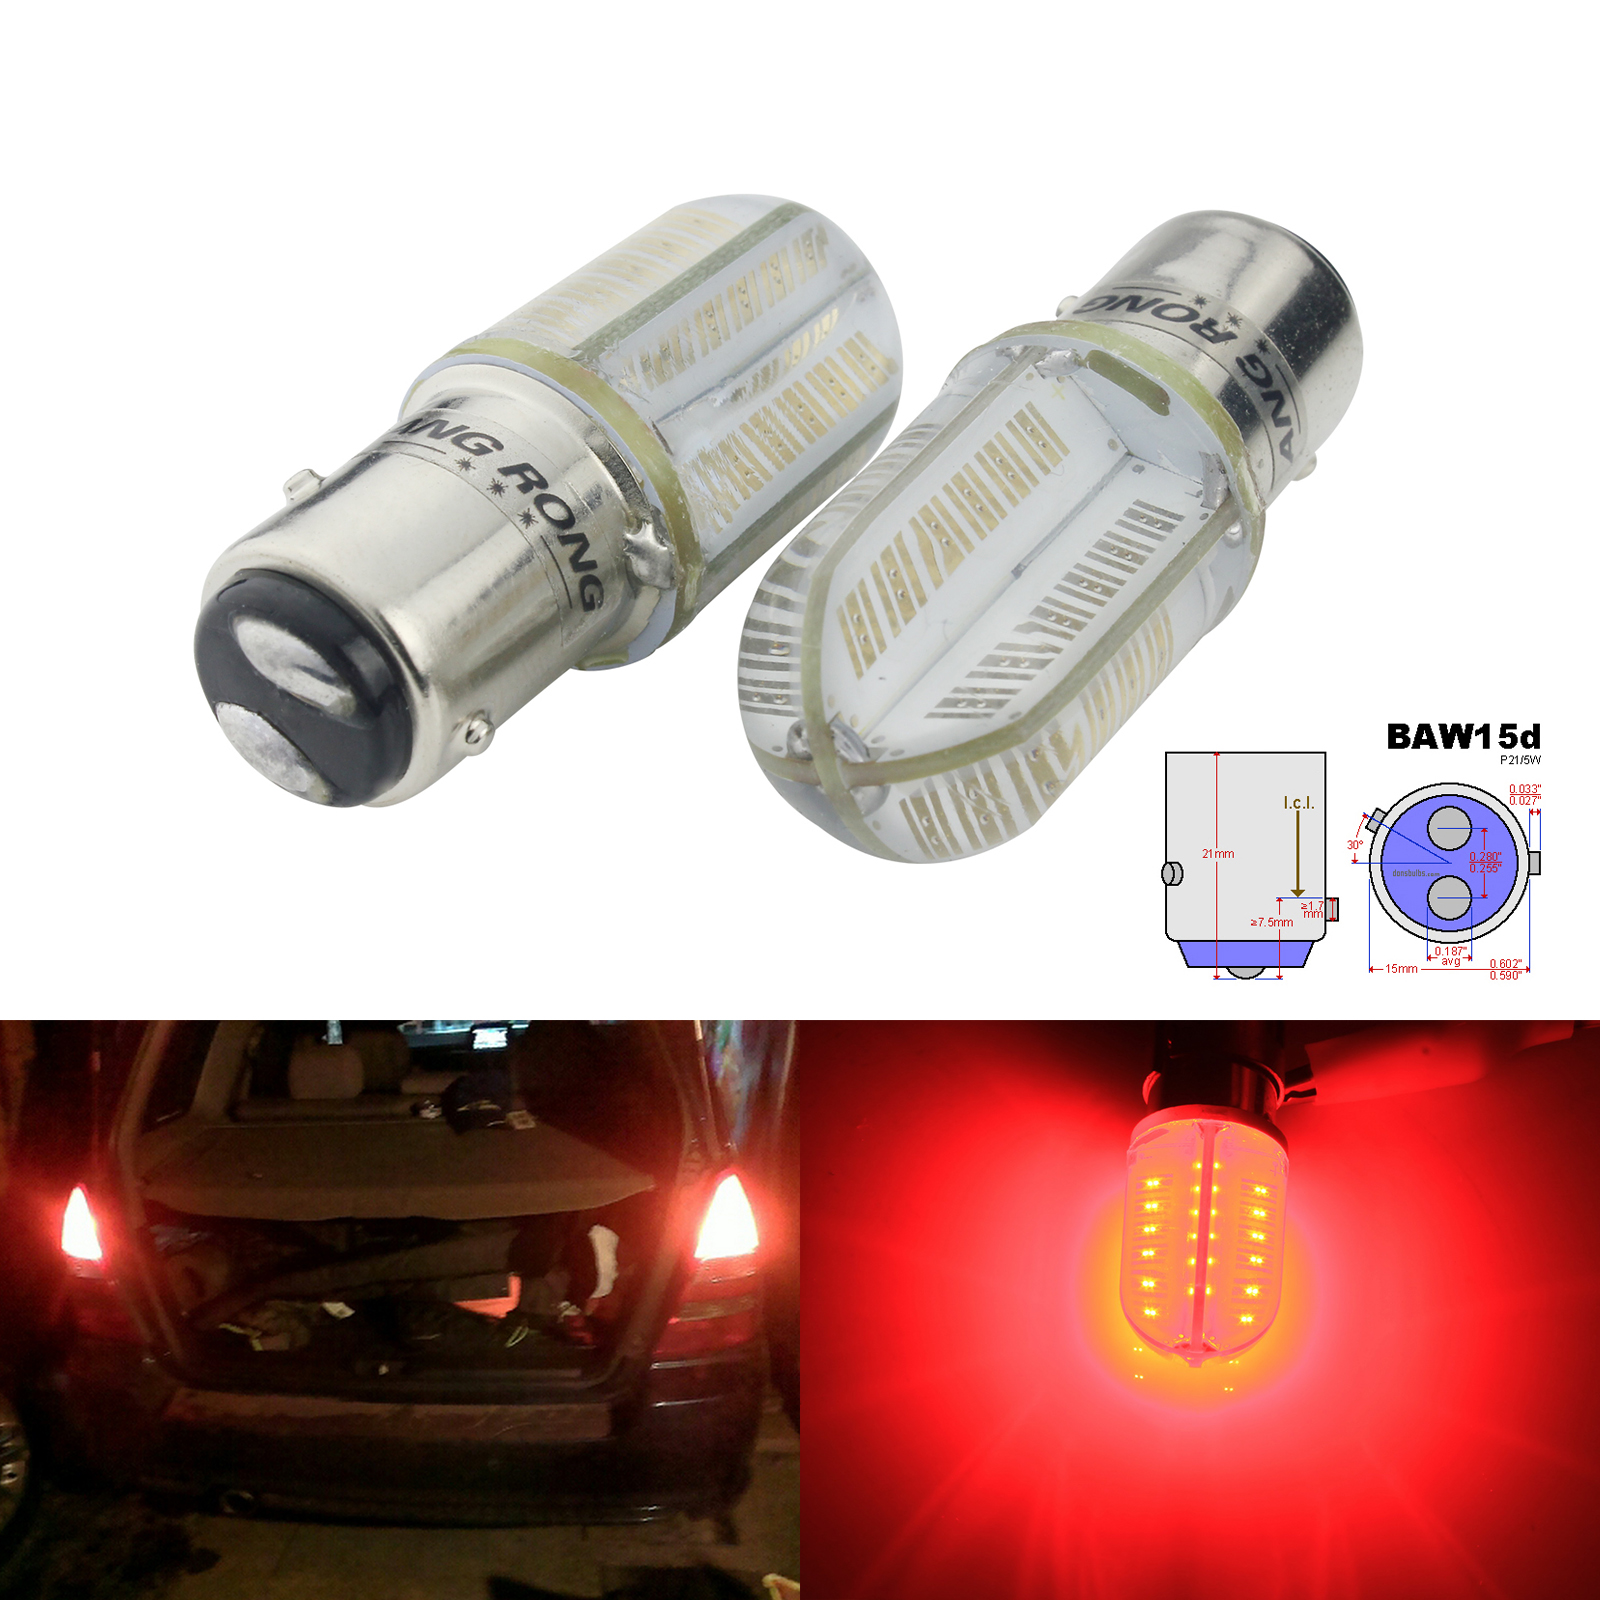 ANGRONG 2x 567 PR21/5W BAW15d Red COB LED Bulbs Rear Tail Brake Stop Light